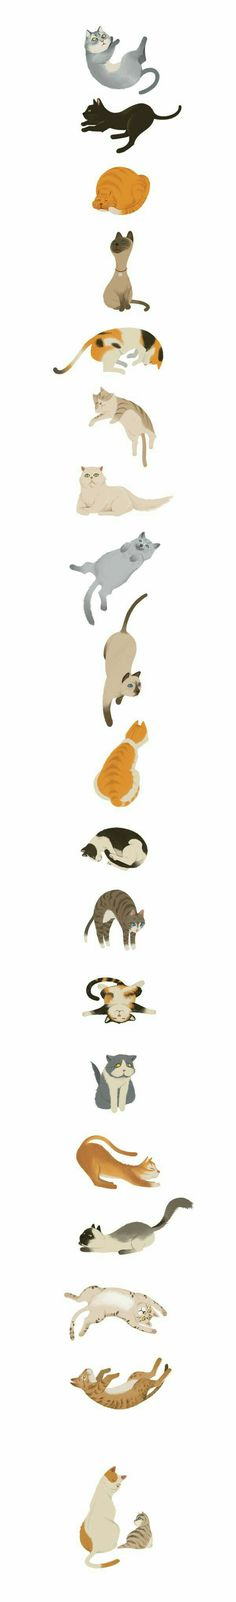 Feline Fun I #PetIllustration I #KittyCatLove